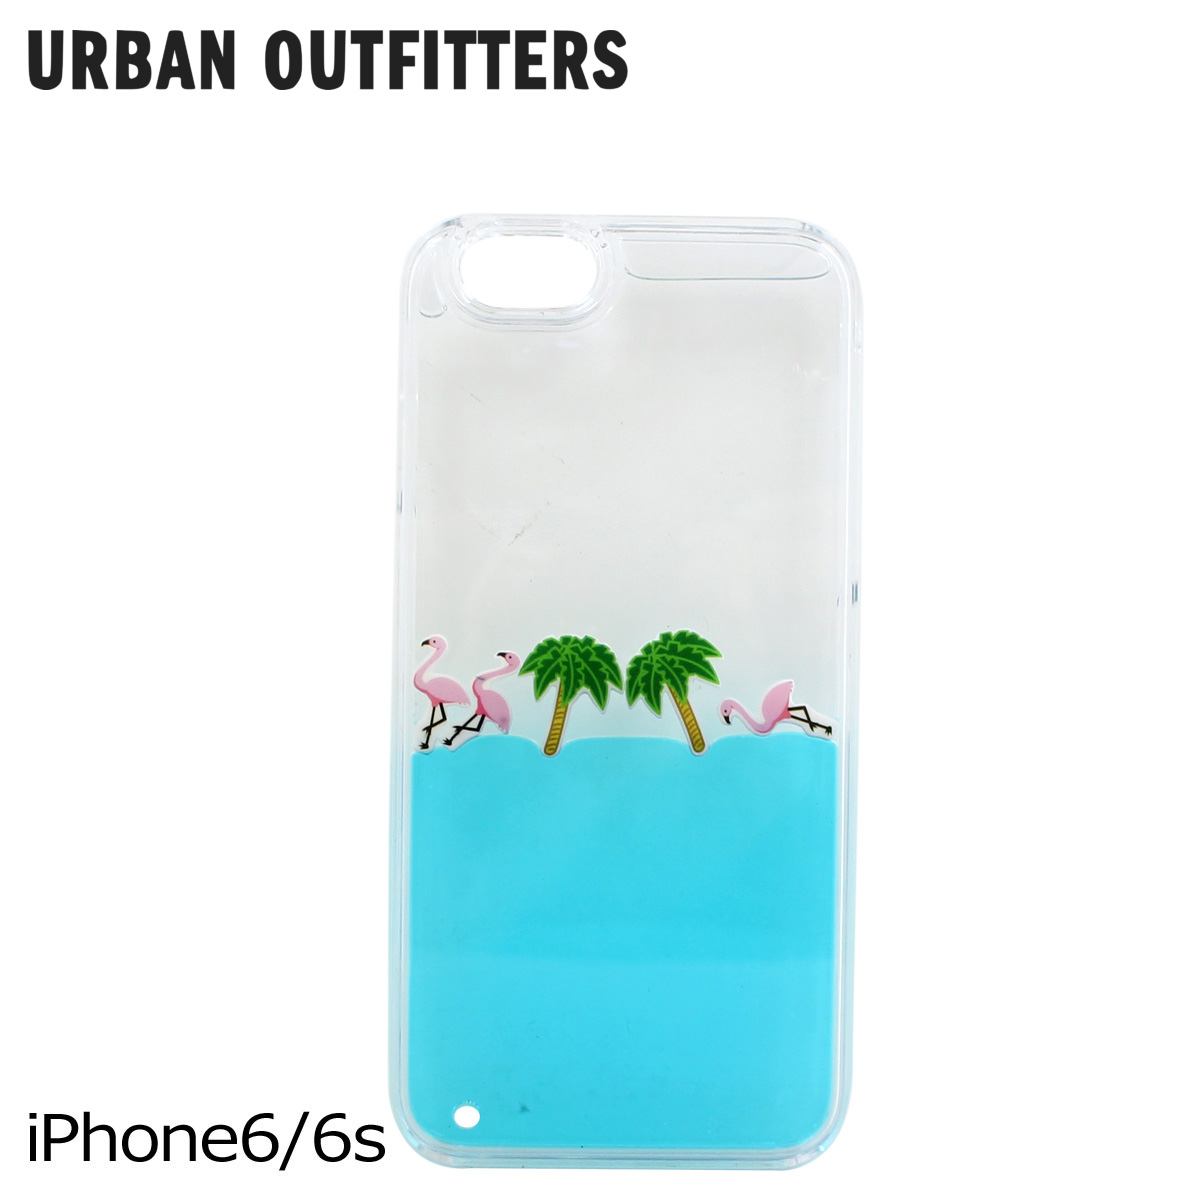 Allsports Urban Outfitters Urban Outfitters Iphone6s Case Iphone6